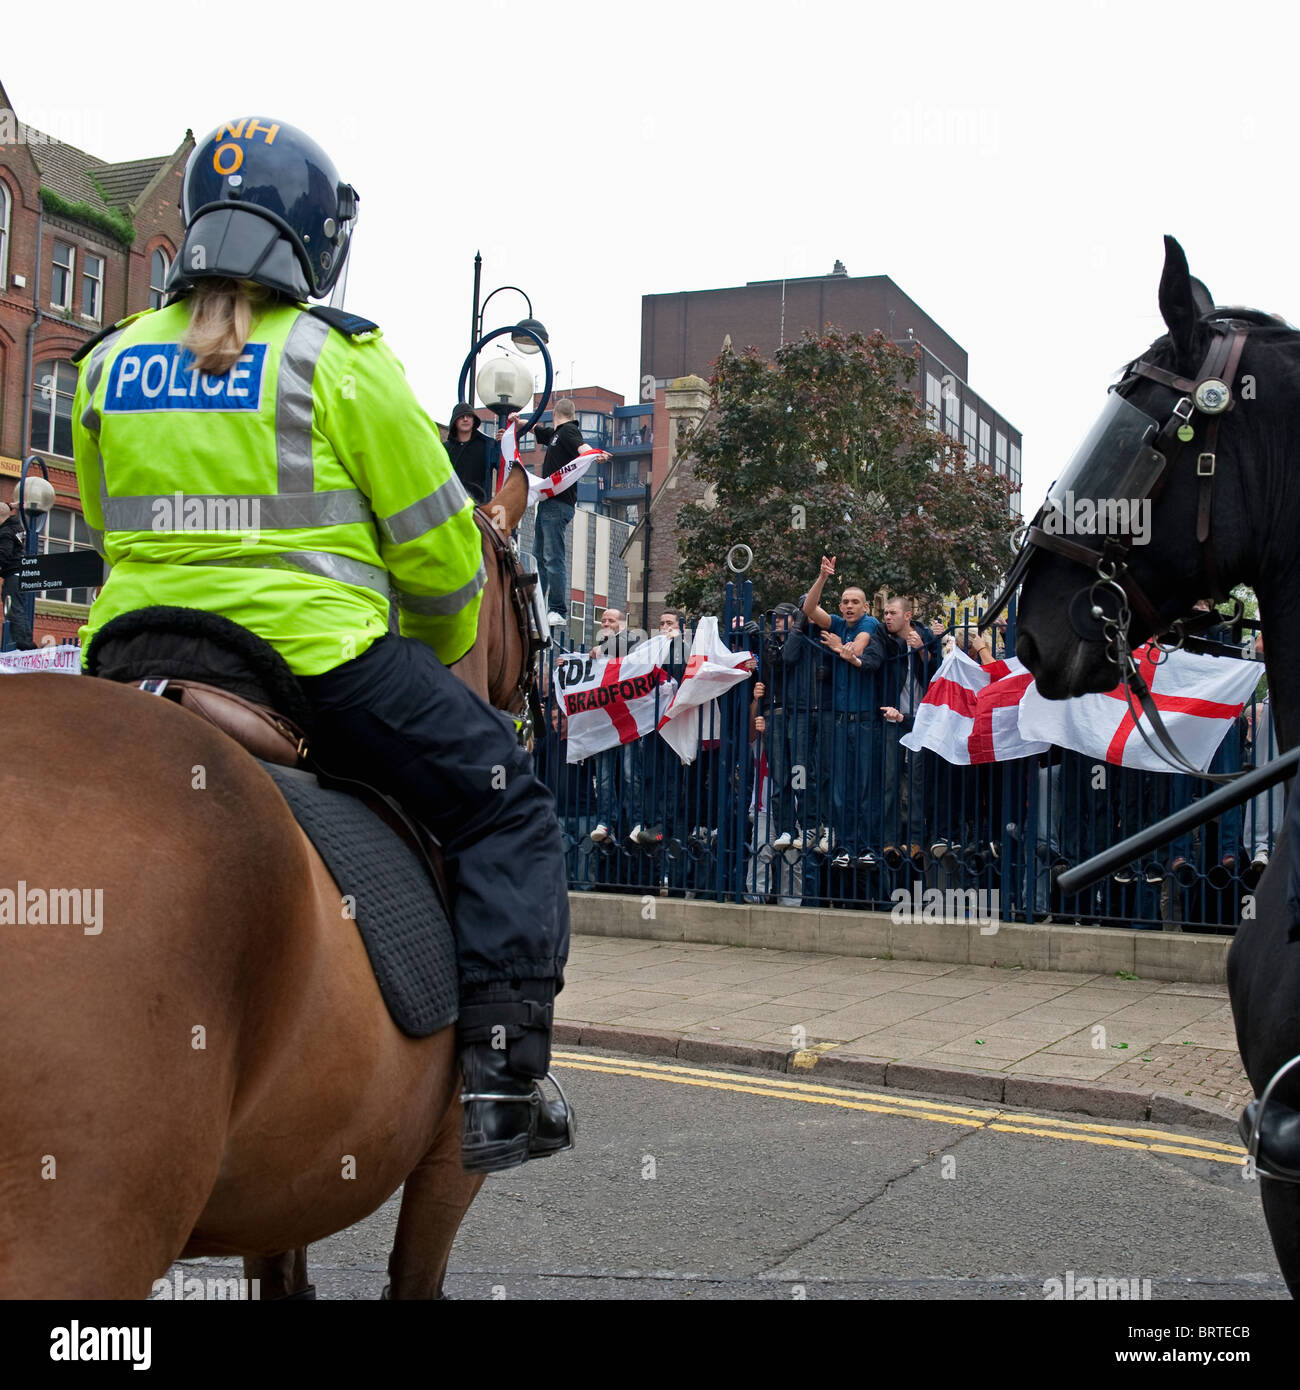 Mounted police guard as The English Defence League demonstrate in Leicester. 9th October 2010. - Stock Image